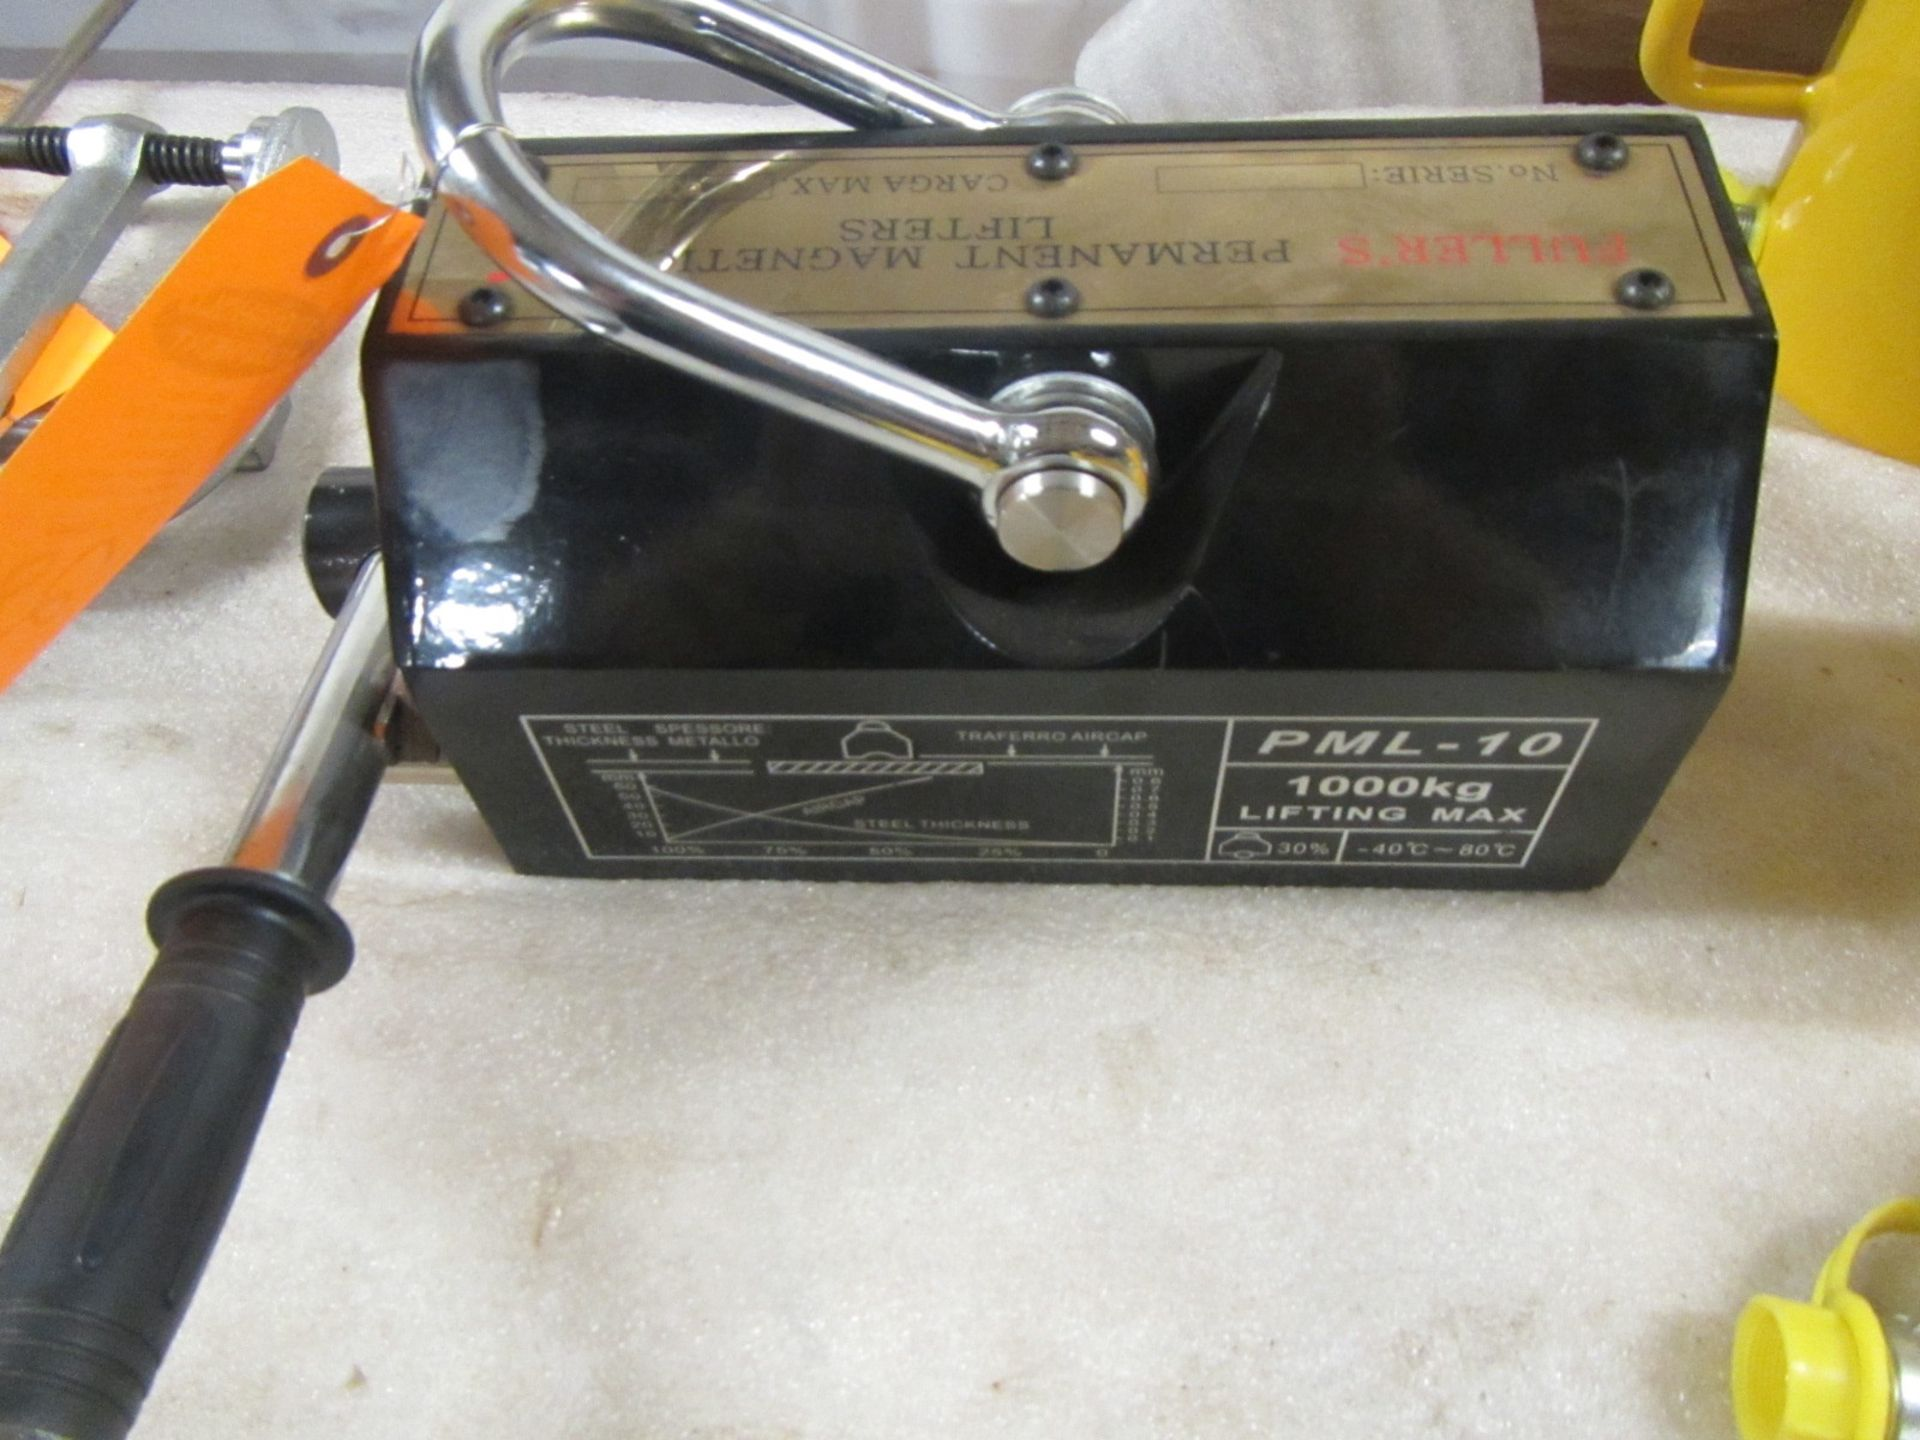 Brand New 1000kg Lifting Magnet - for plate, tubing, pipe